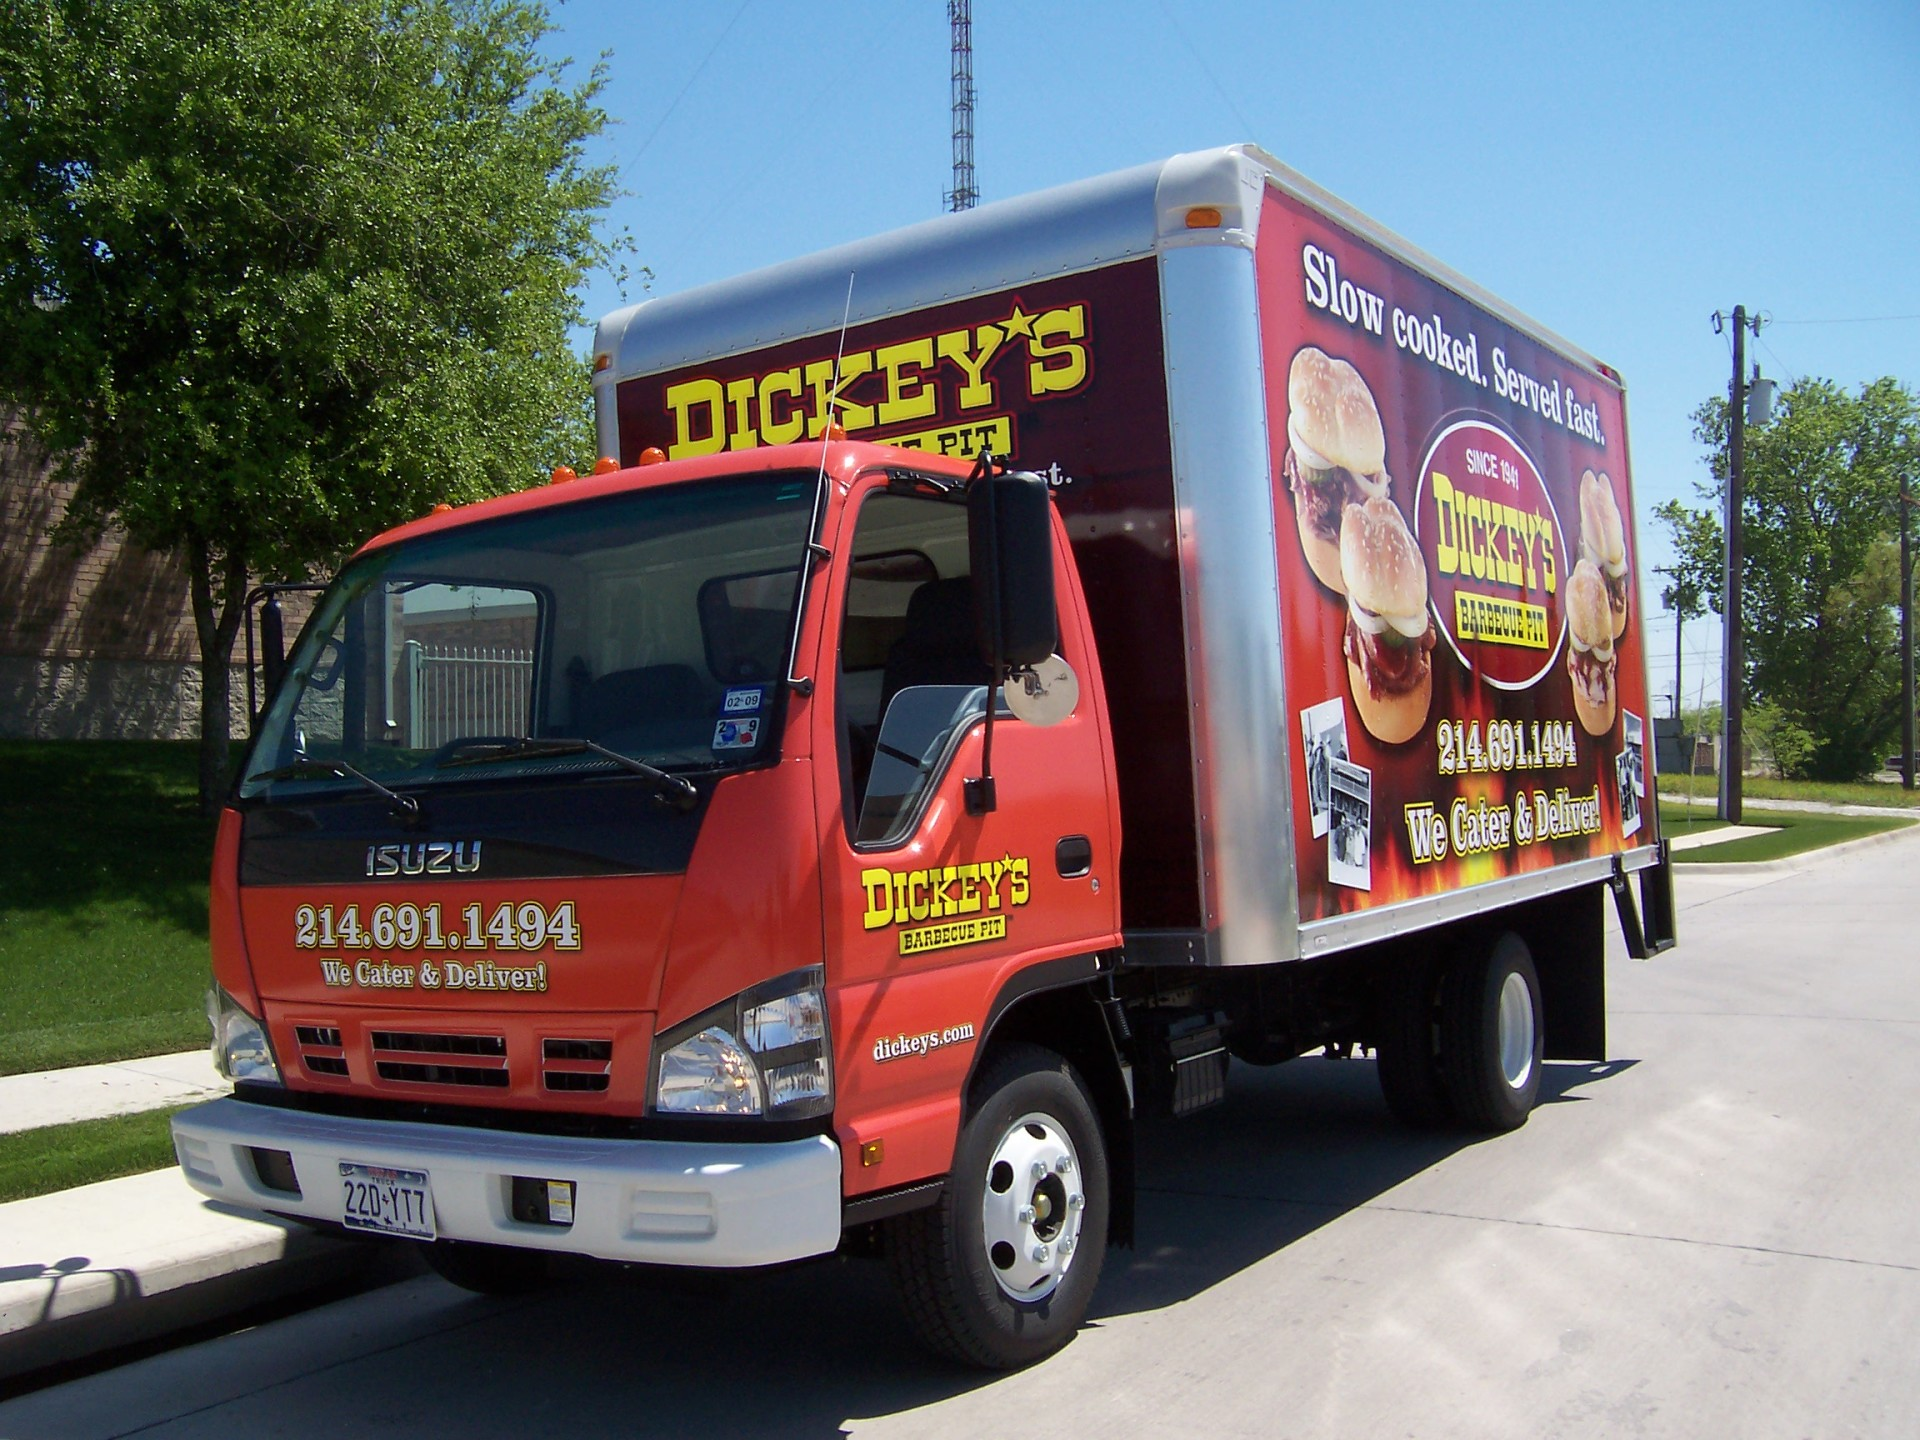 Dickey's Isuzu Box Truck Dallas TX,  Dickey's Vehicle Wraps, Vehicle Wraps Dallas TX